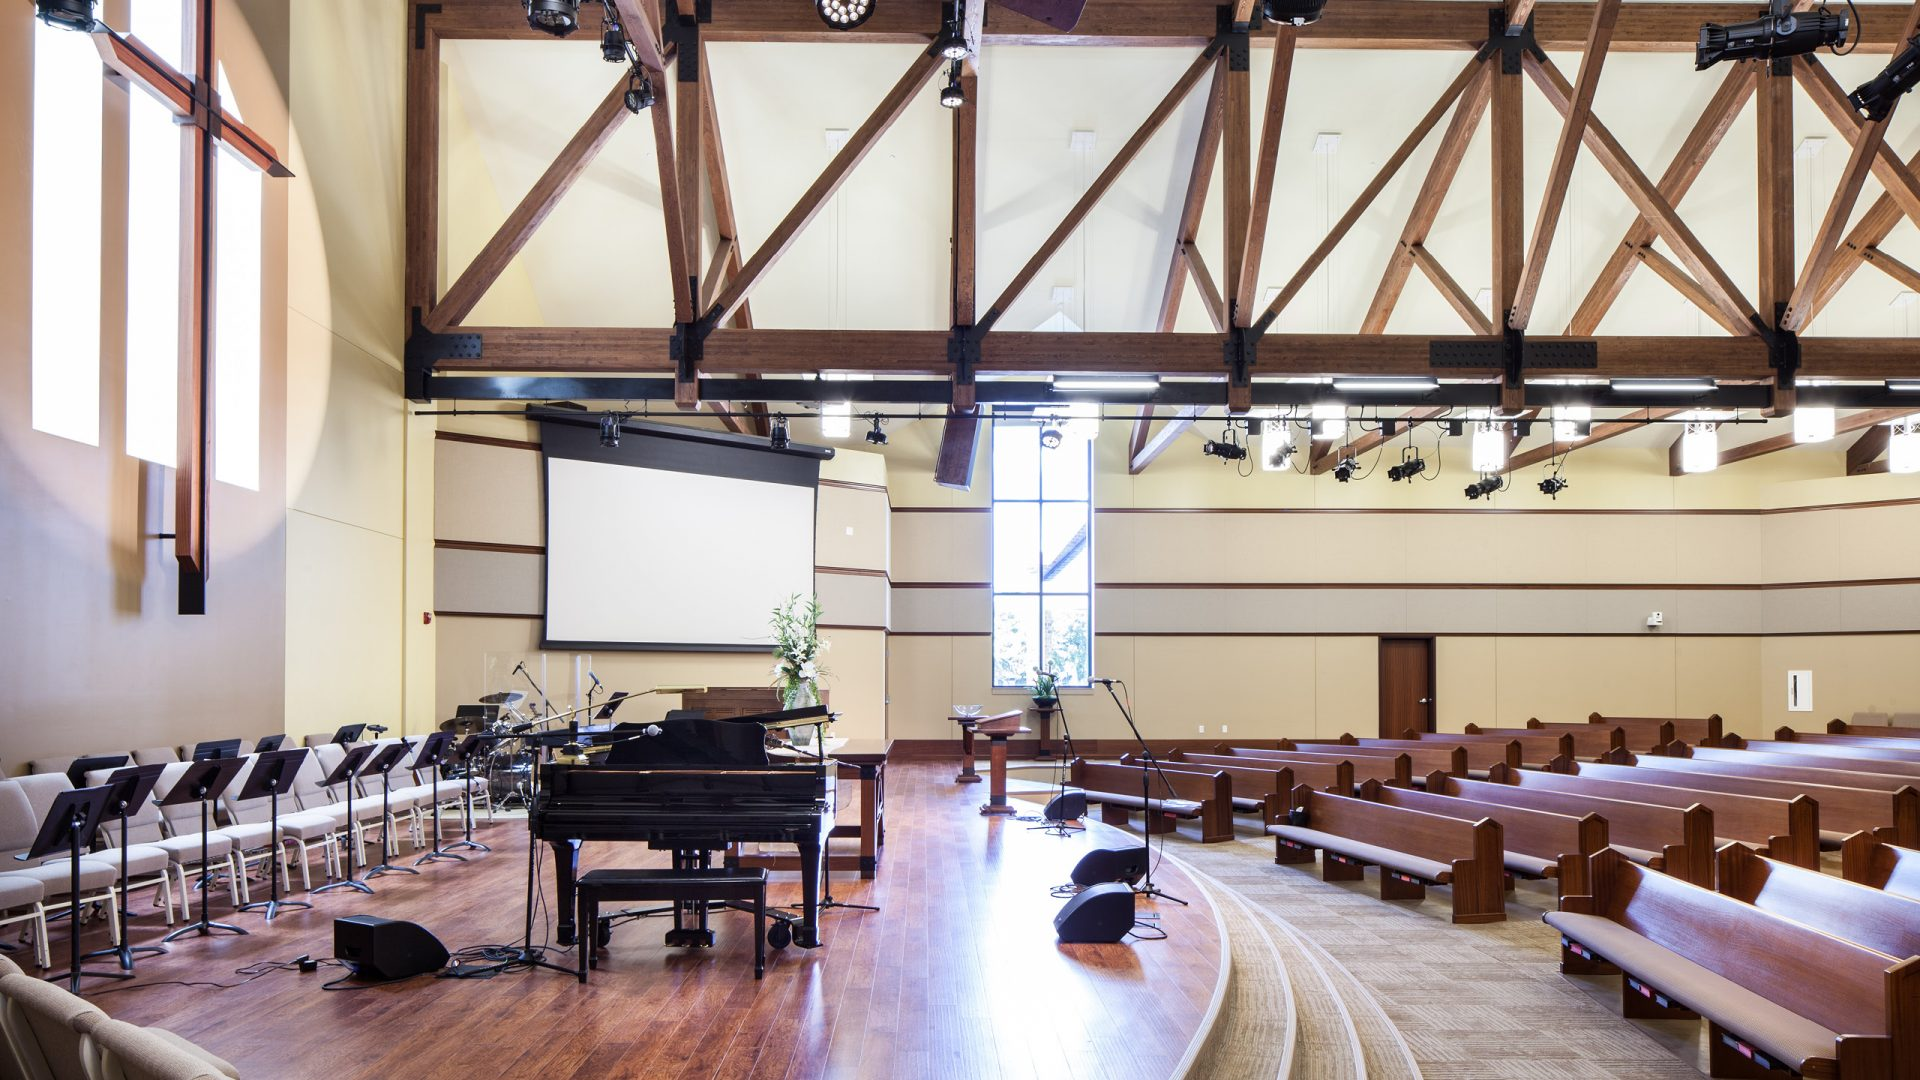 wooden pews and stage with a piano at Geneseo First United Methodist Church